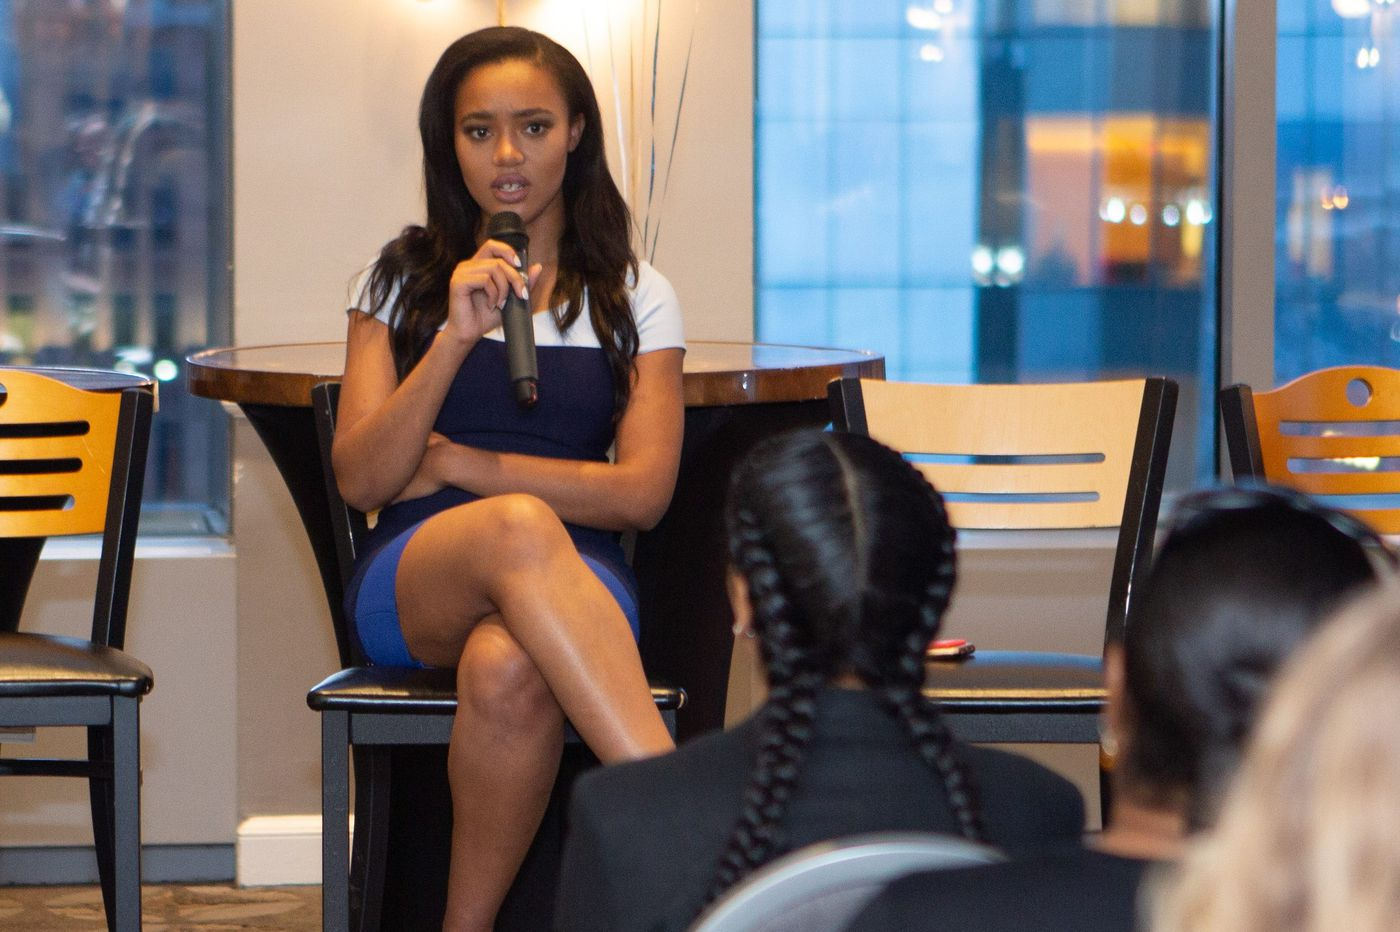 Meet the youngest woman ever to work at the New York Stock Exchange